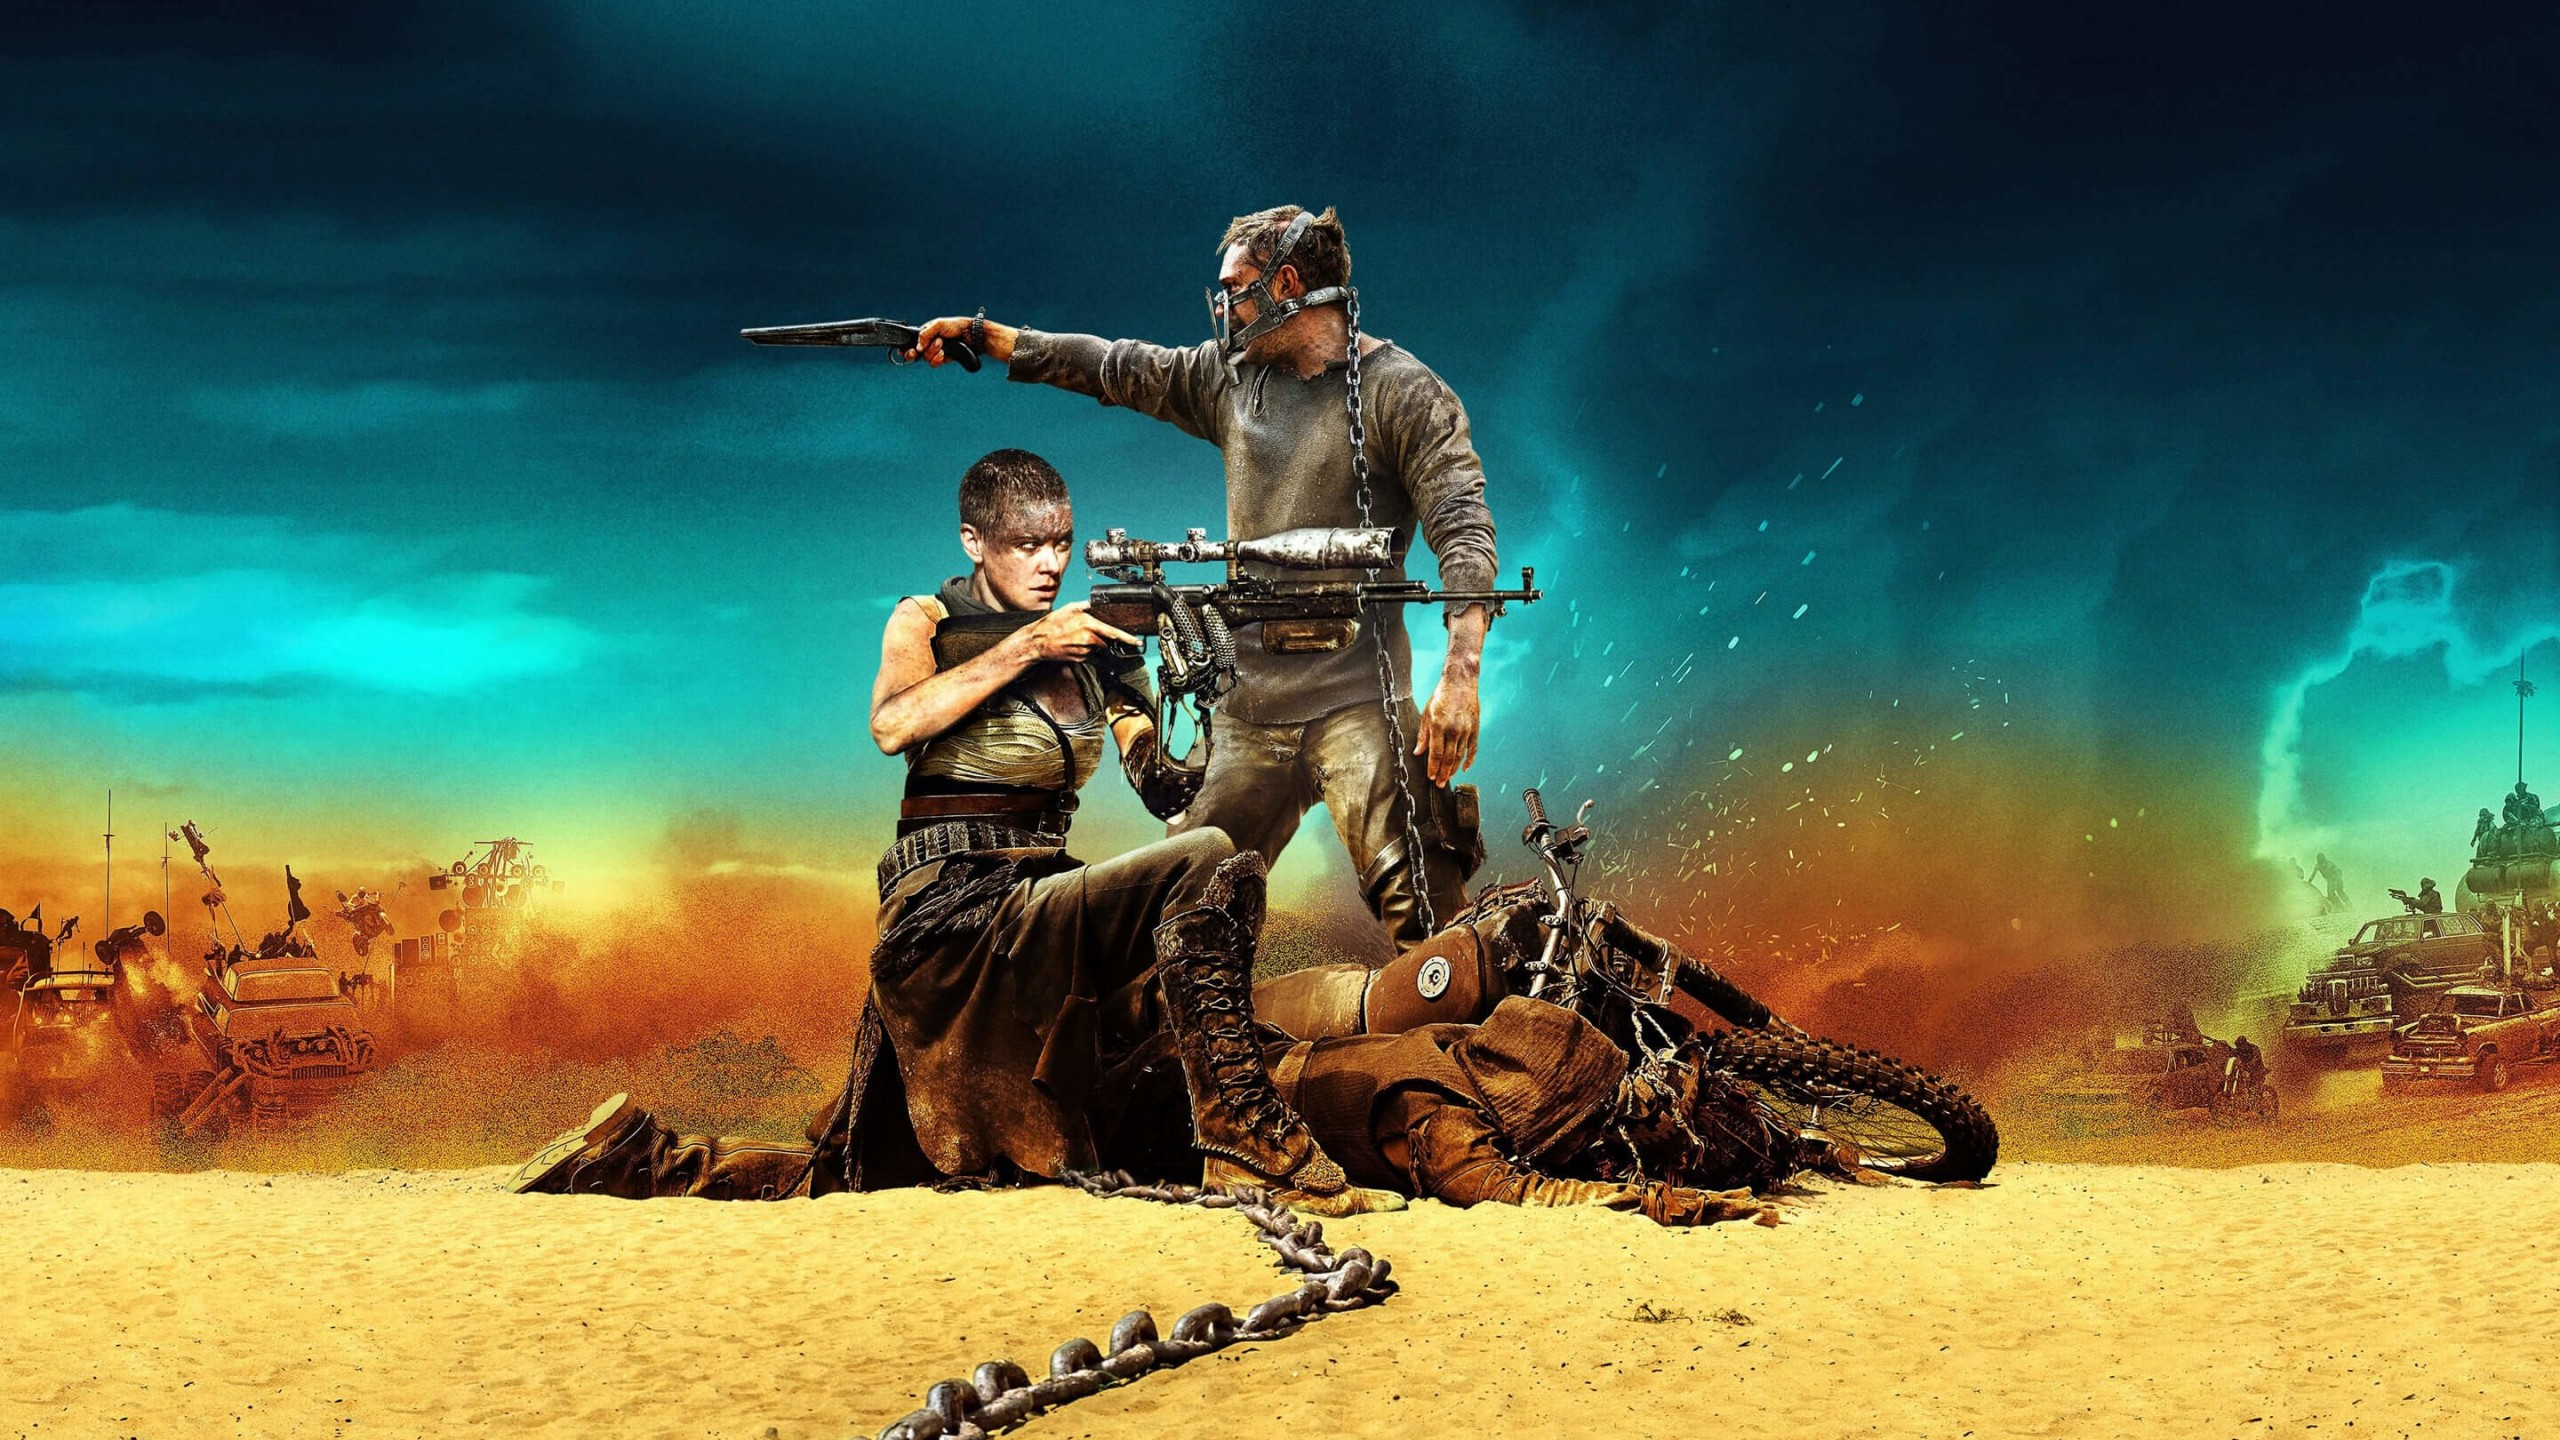 Mad Max: Fury Road Movie (2015) Wallpaper for Desktop 2560x1440